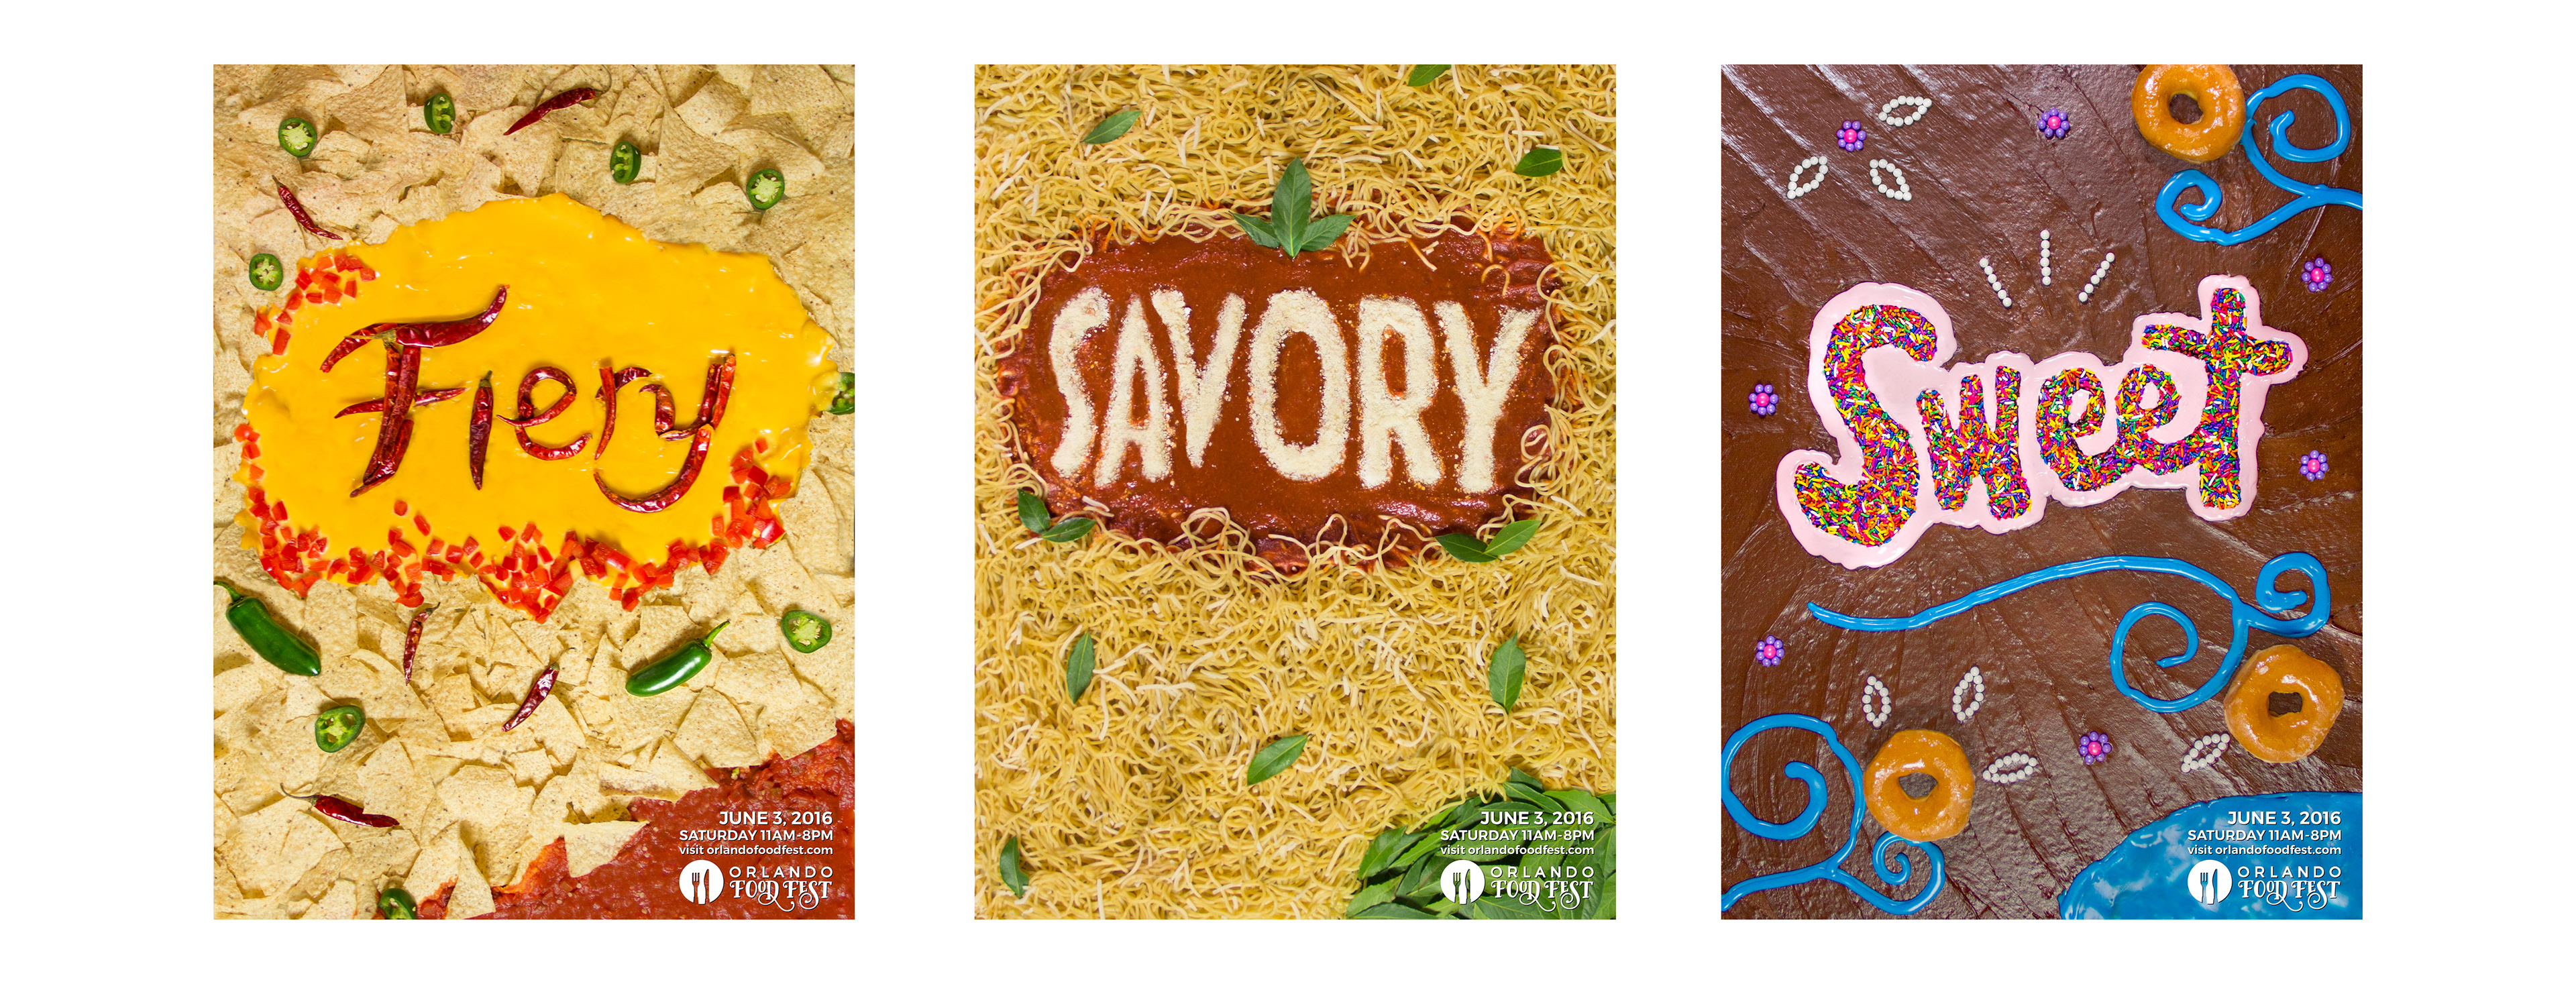 Tharin White Food Typography Advertisements